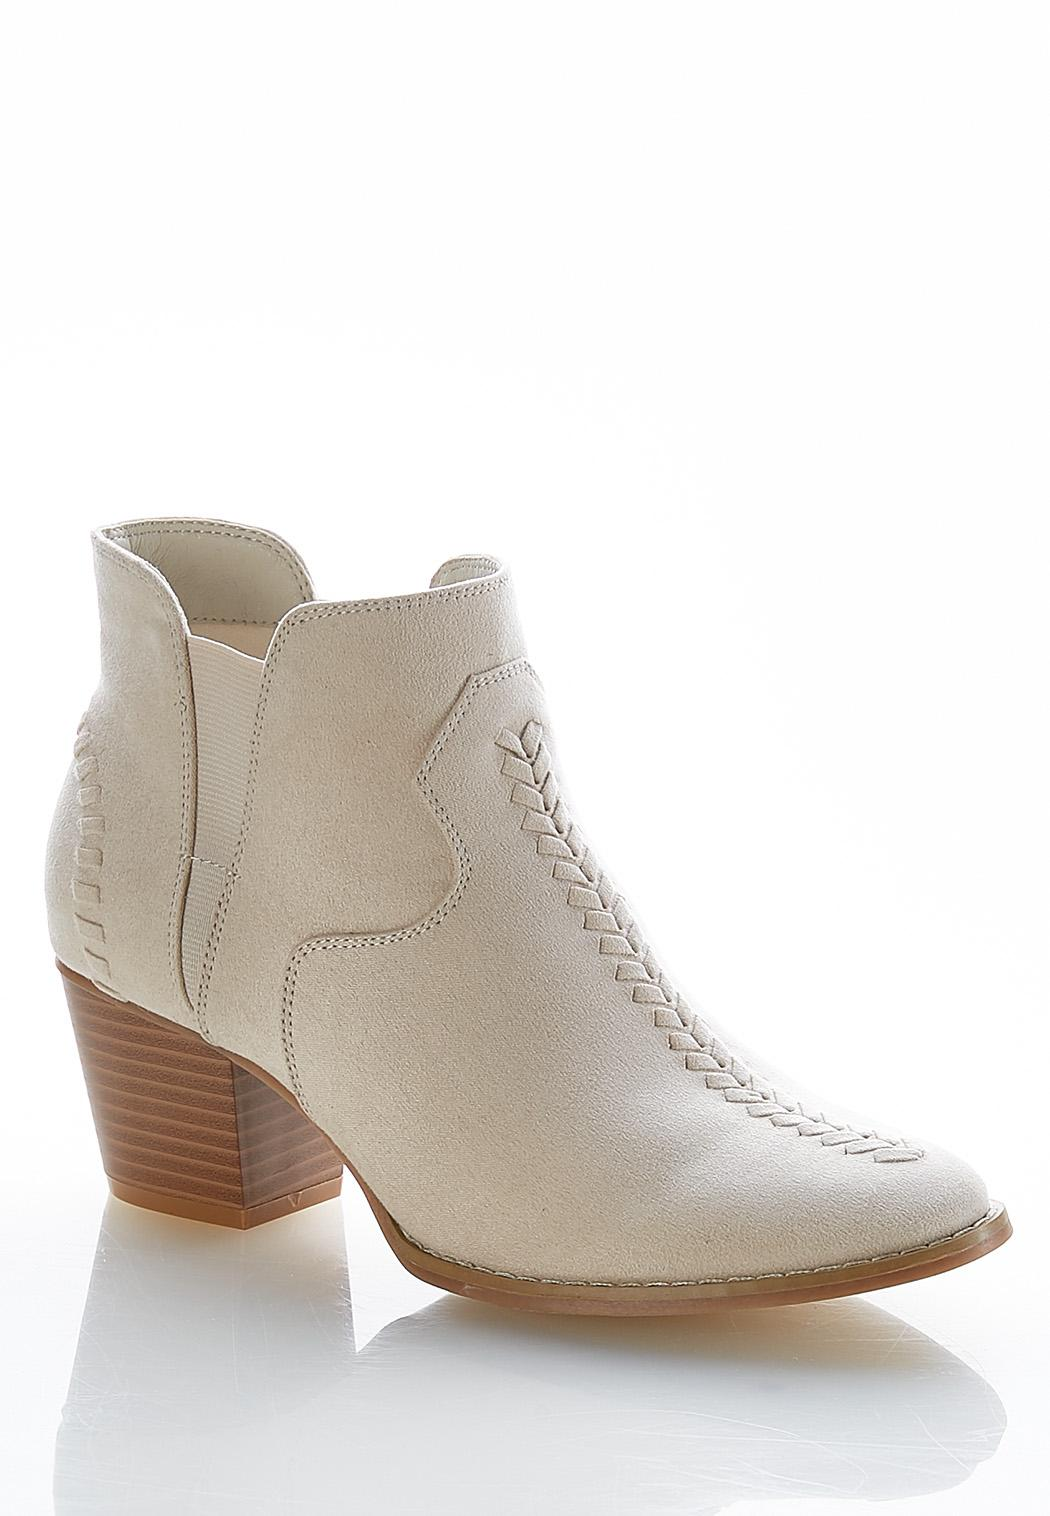 Stitched Ankle Boots